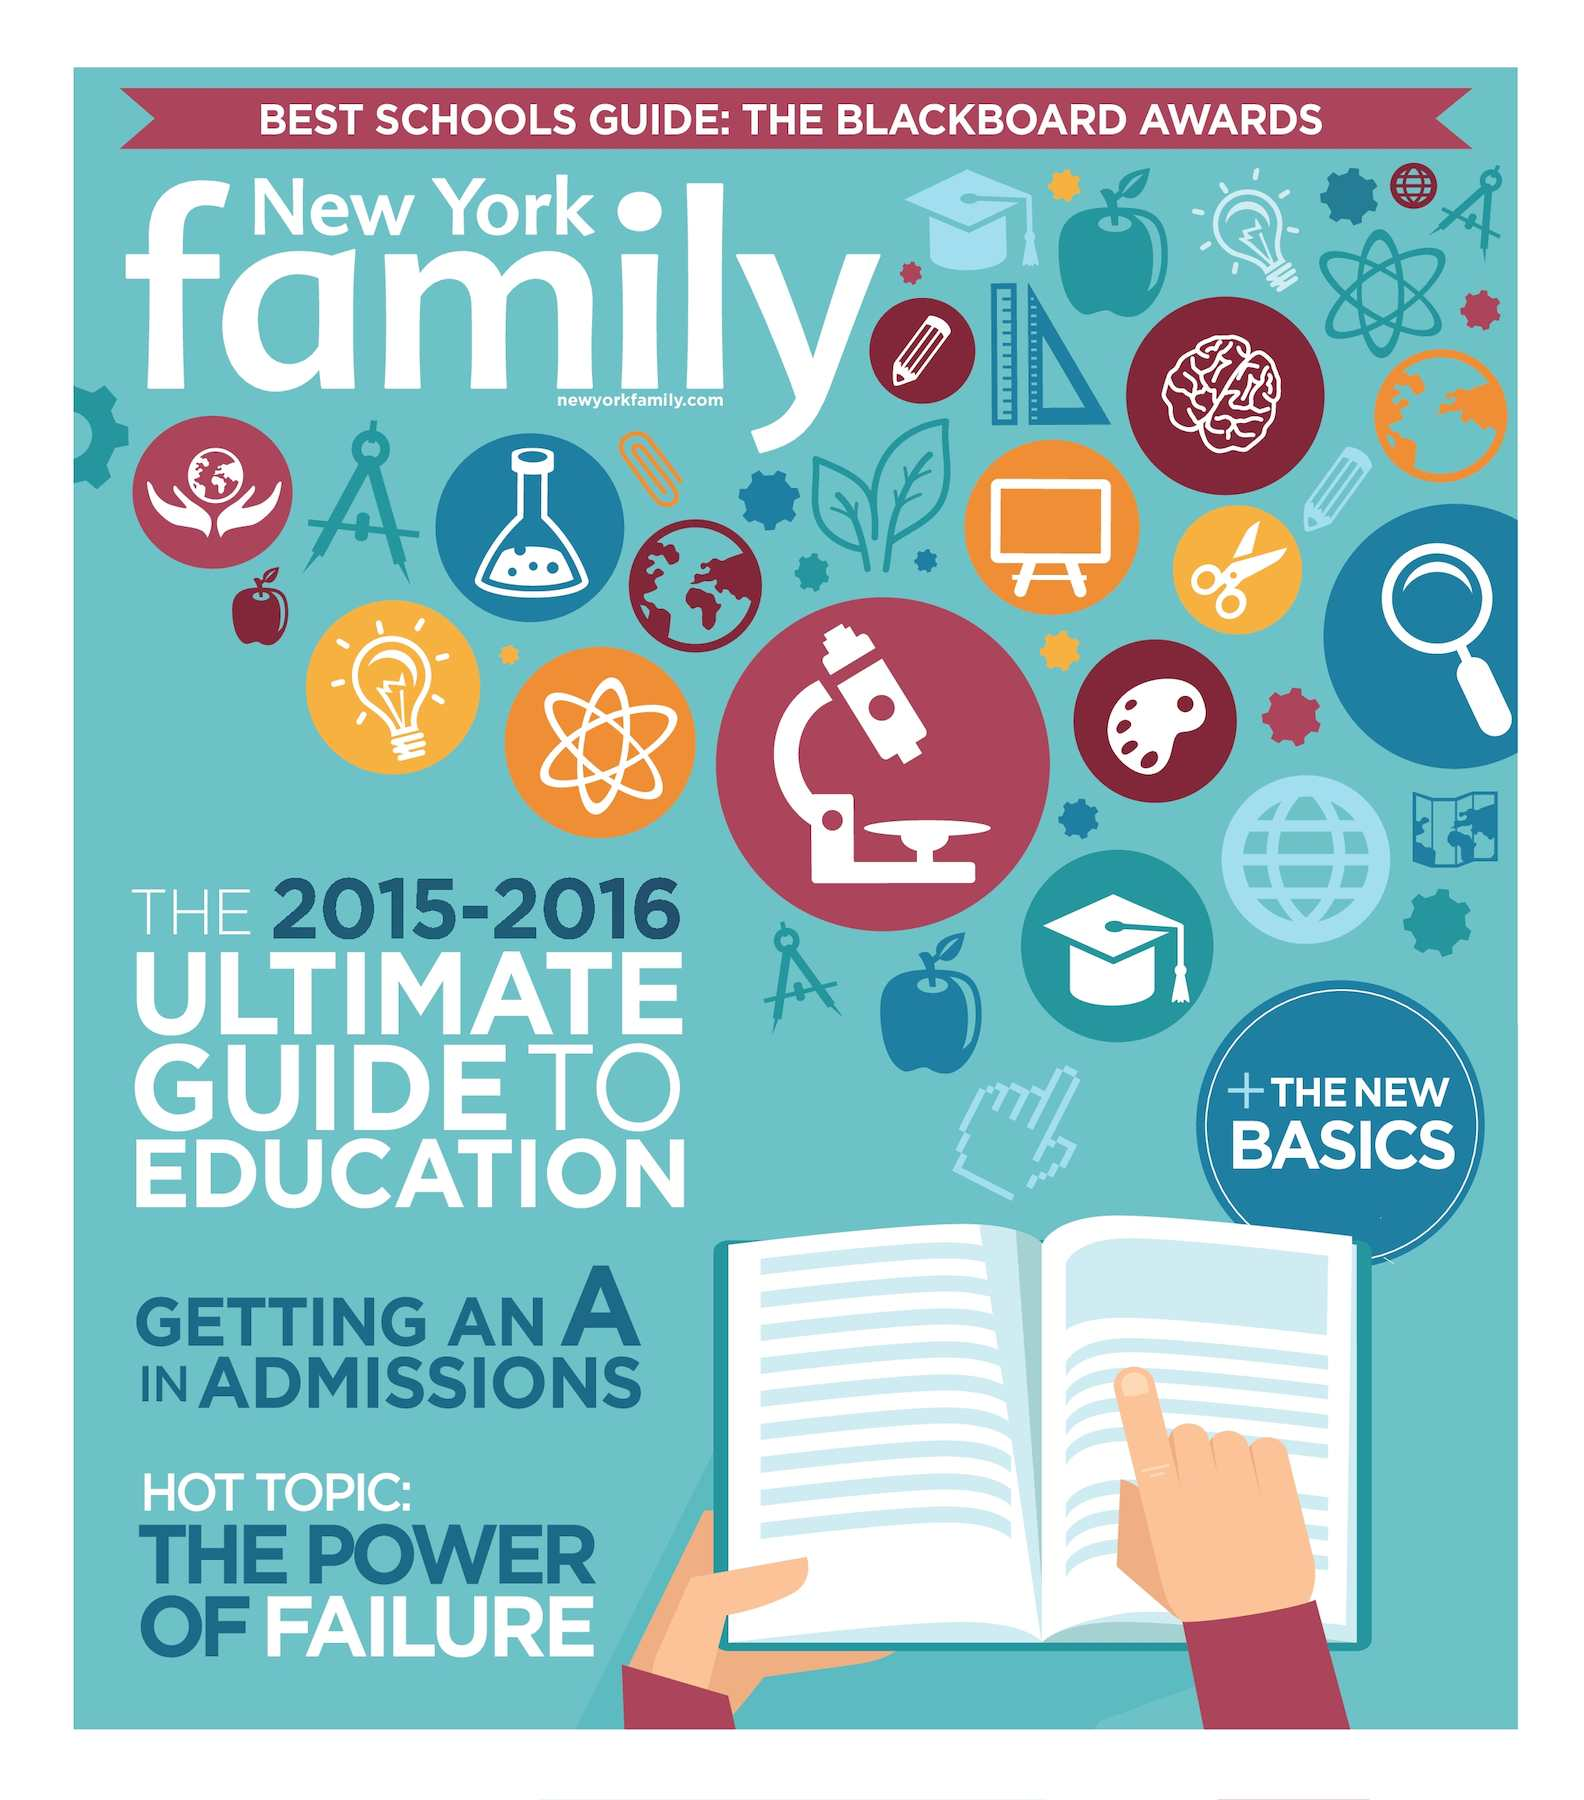 Calaméo - New York Family 2015-2016 Ultimate Guide To Education